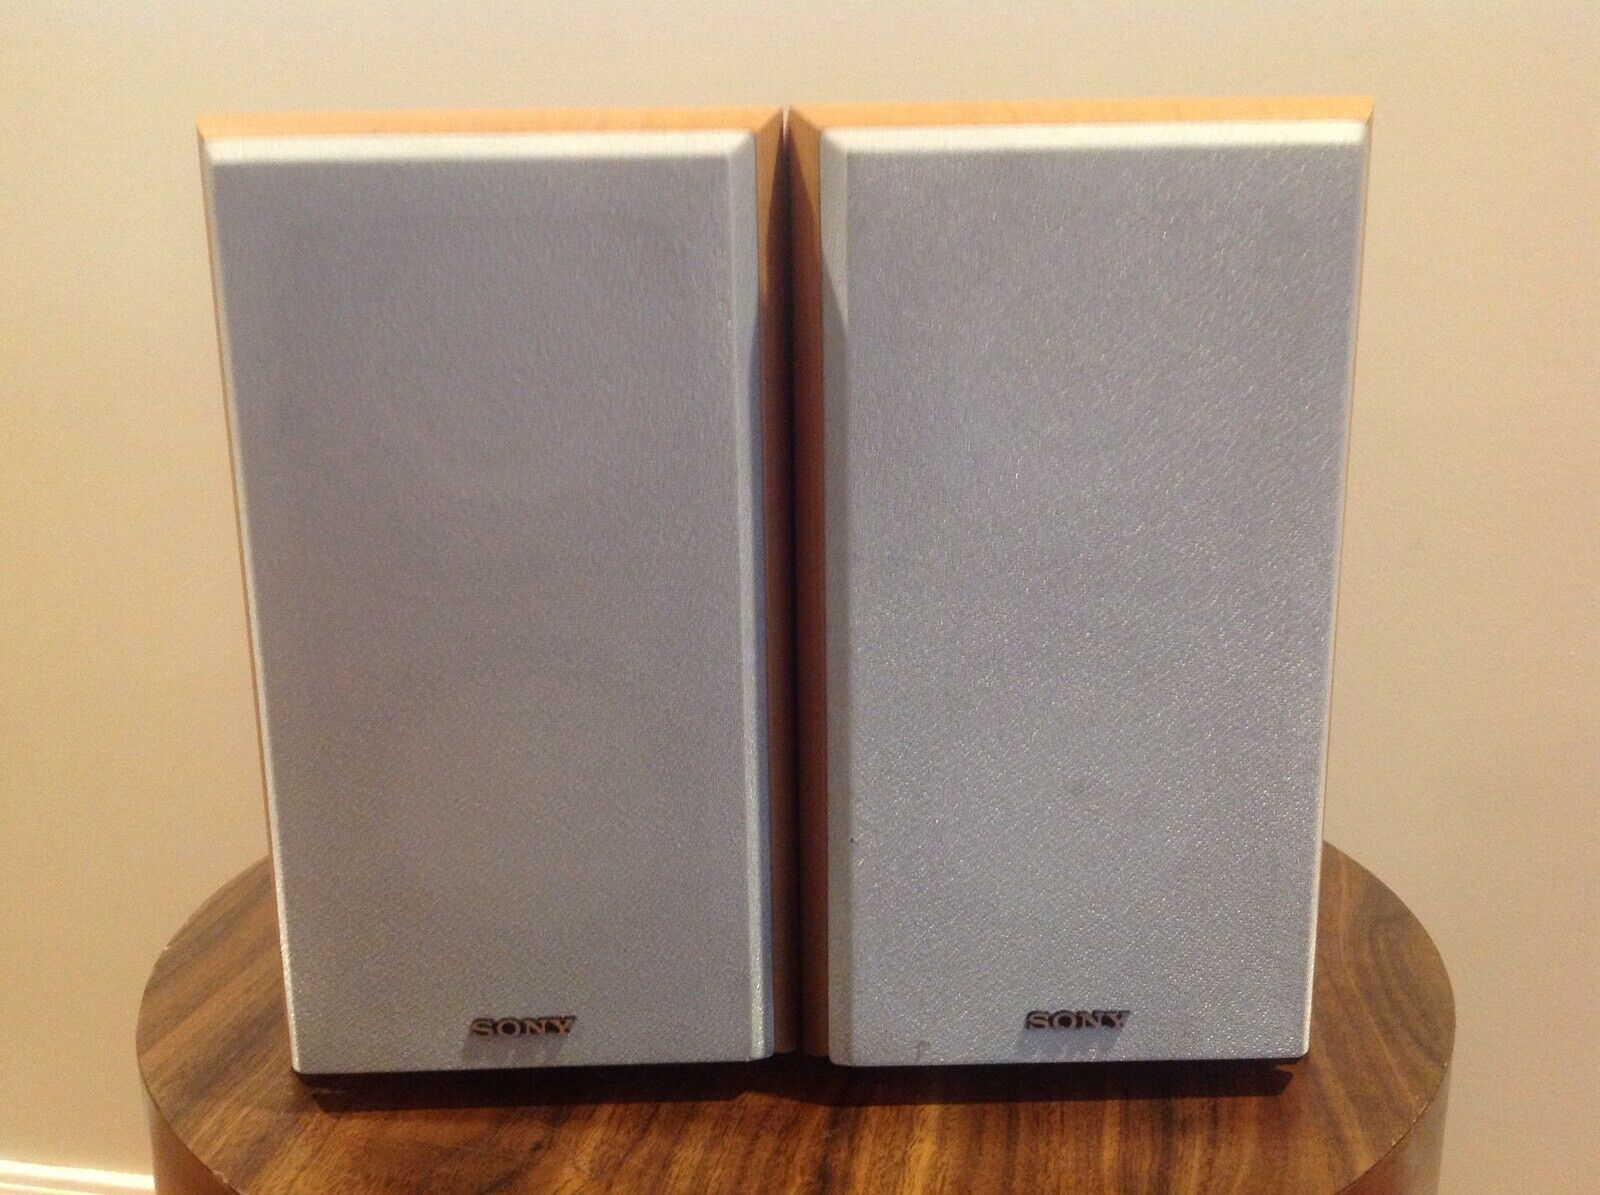 (2) Sony SS-CRB5 2-Way Bass Reflex Speakers -TESTED AND WORKS GREAT- Good Cond.